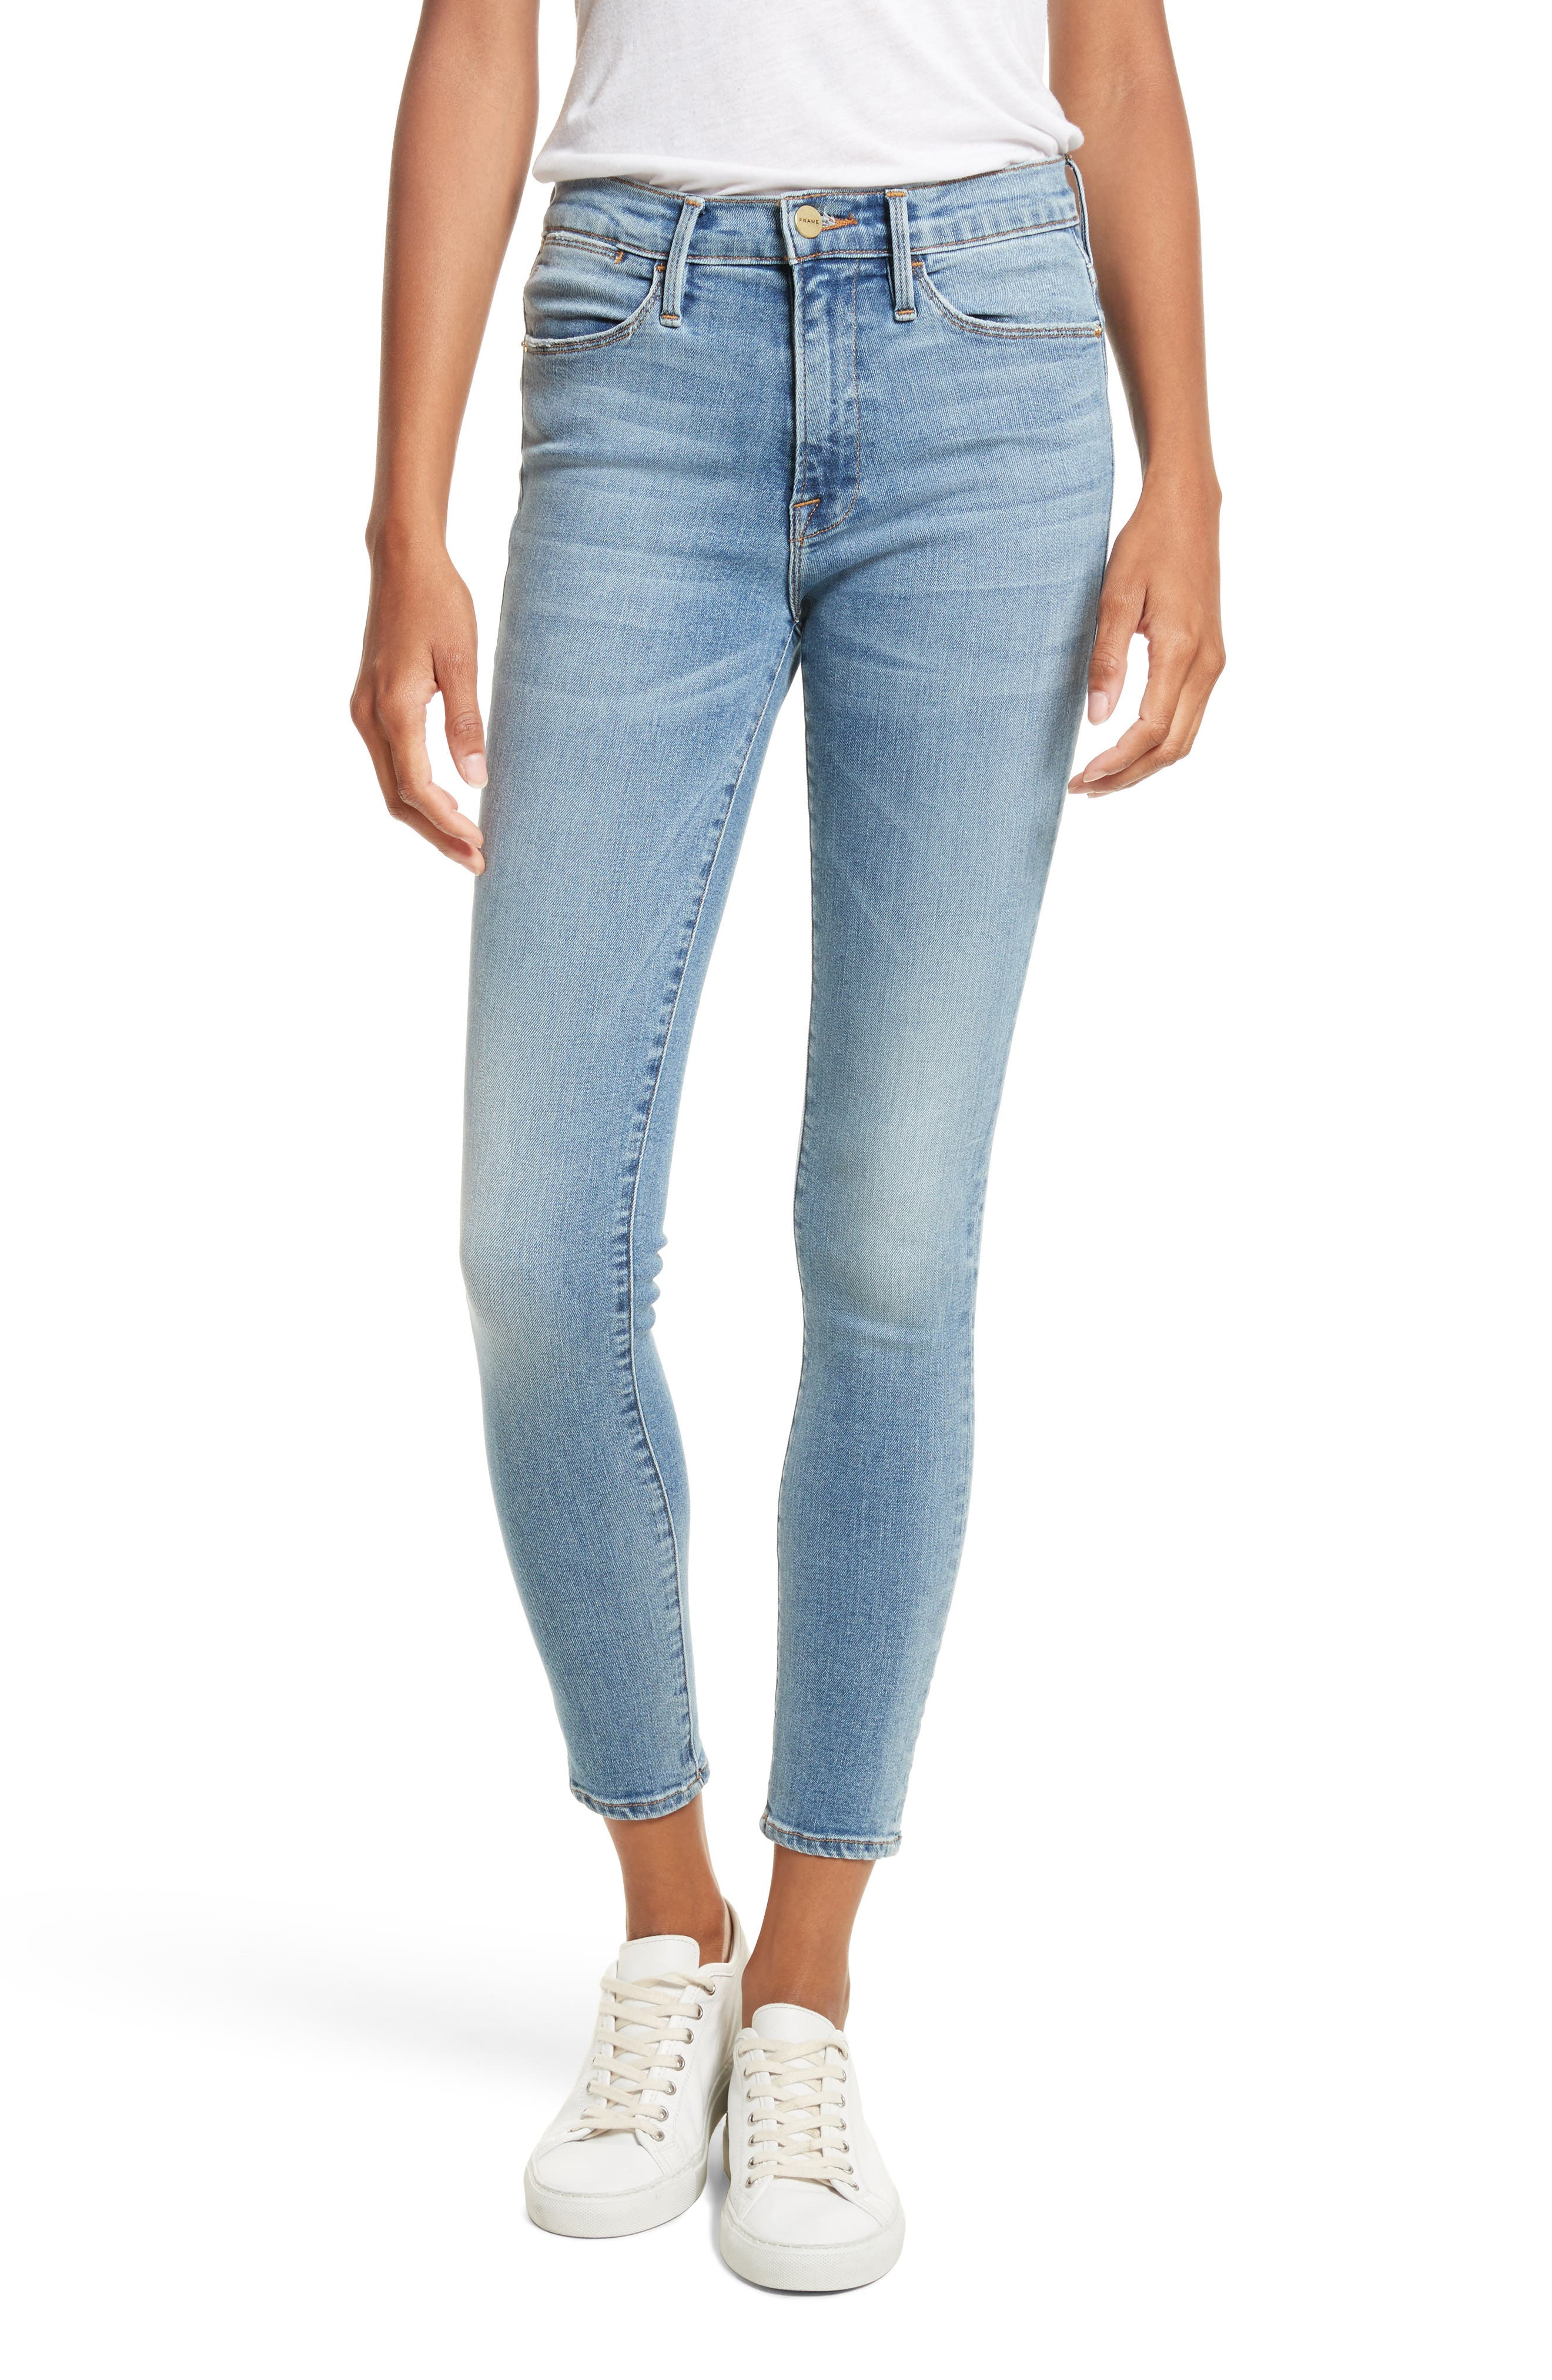 721 high rise skinny jeans open rinse